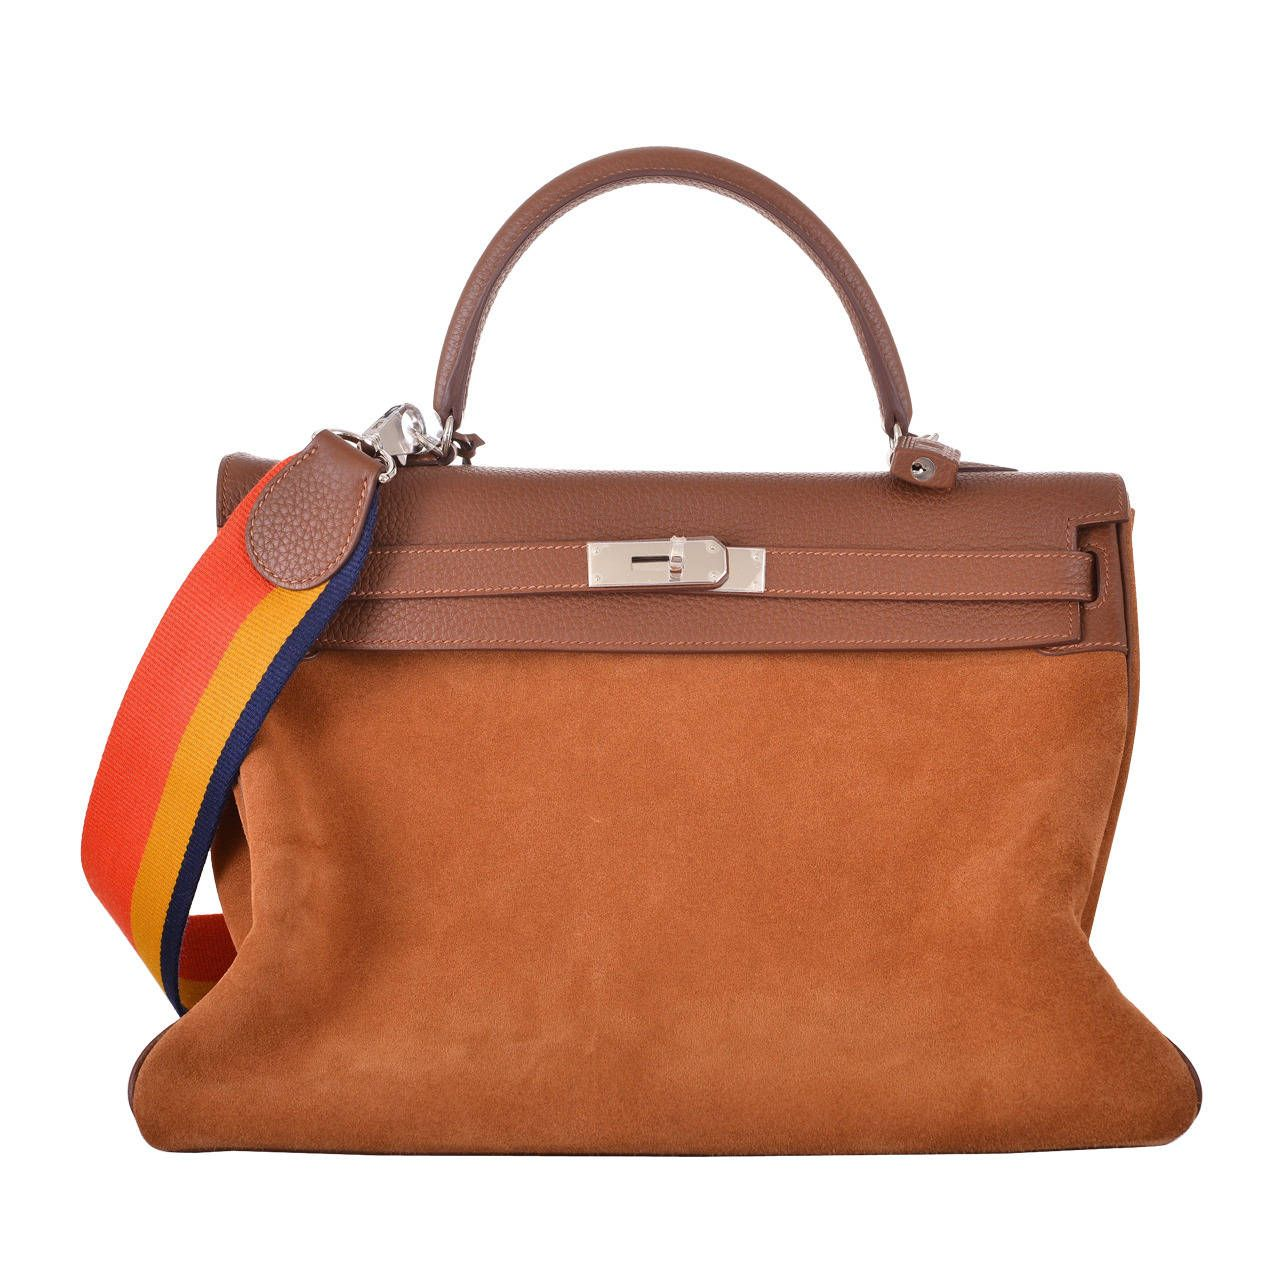 HERMES KELLY BAG 35CM LIMITED EDITION GRIZZLY SUEDE WITH RAINBOW STRAP  JaneFinds  8965d2b166